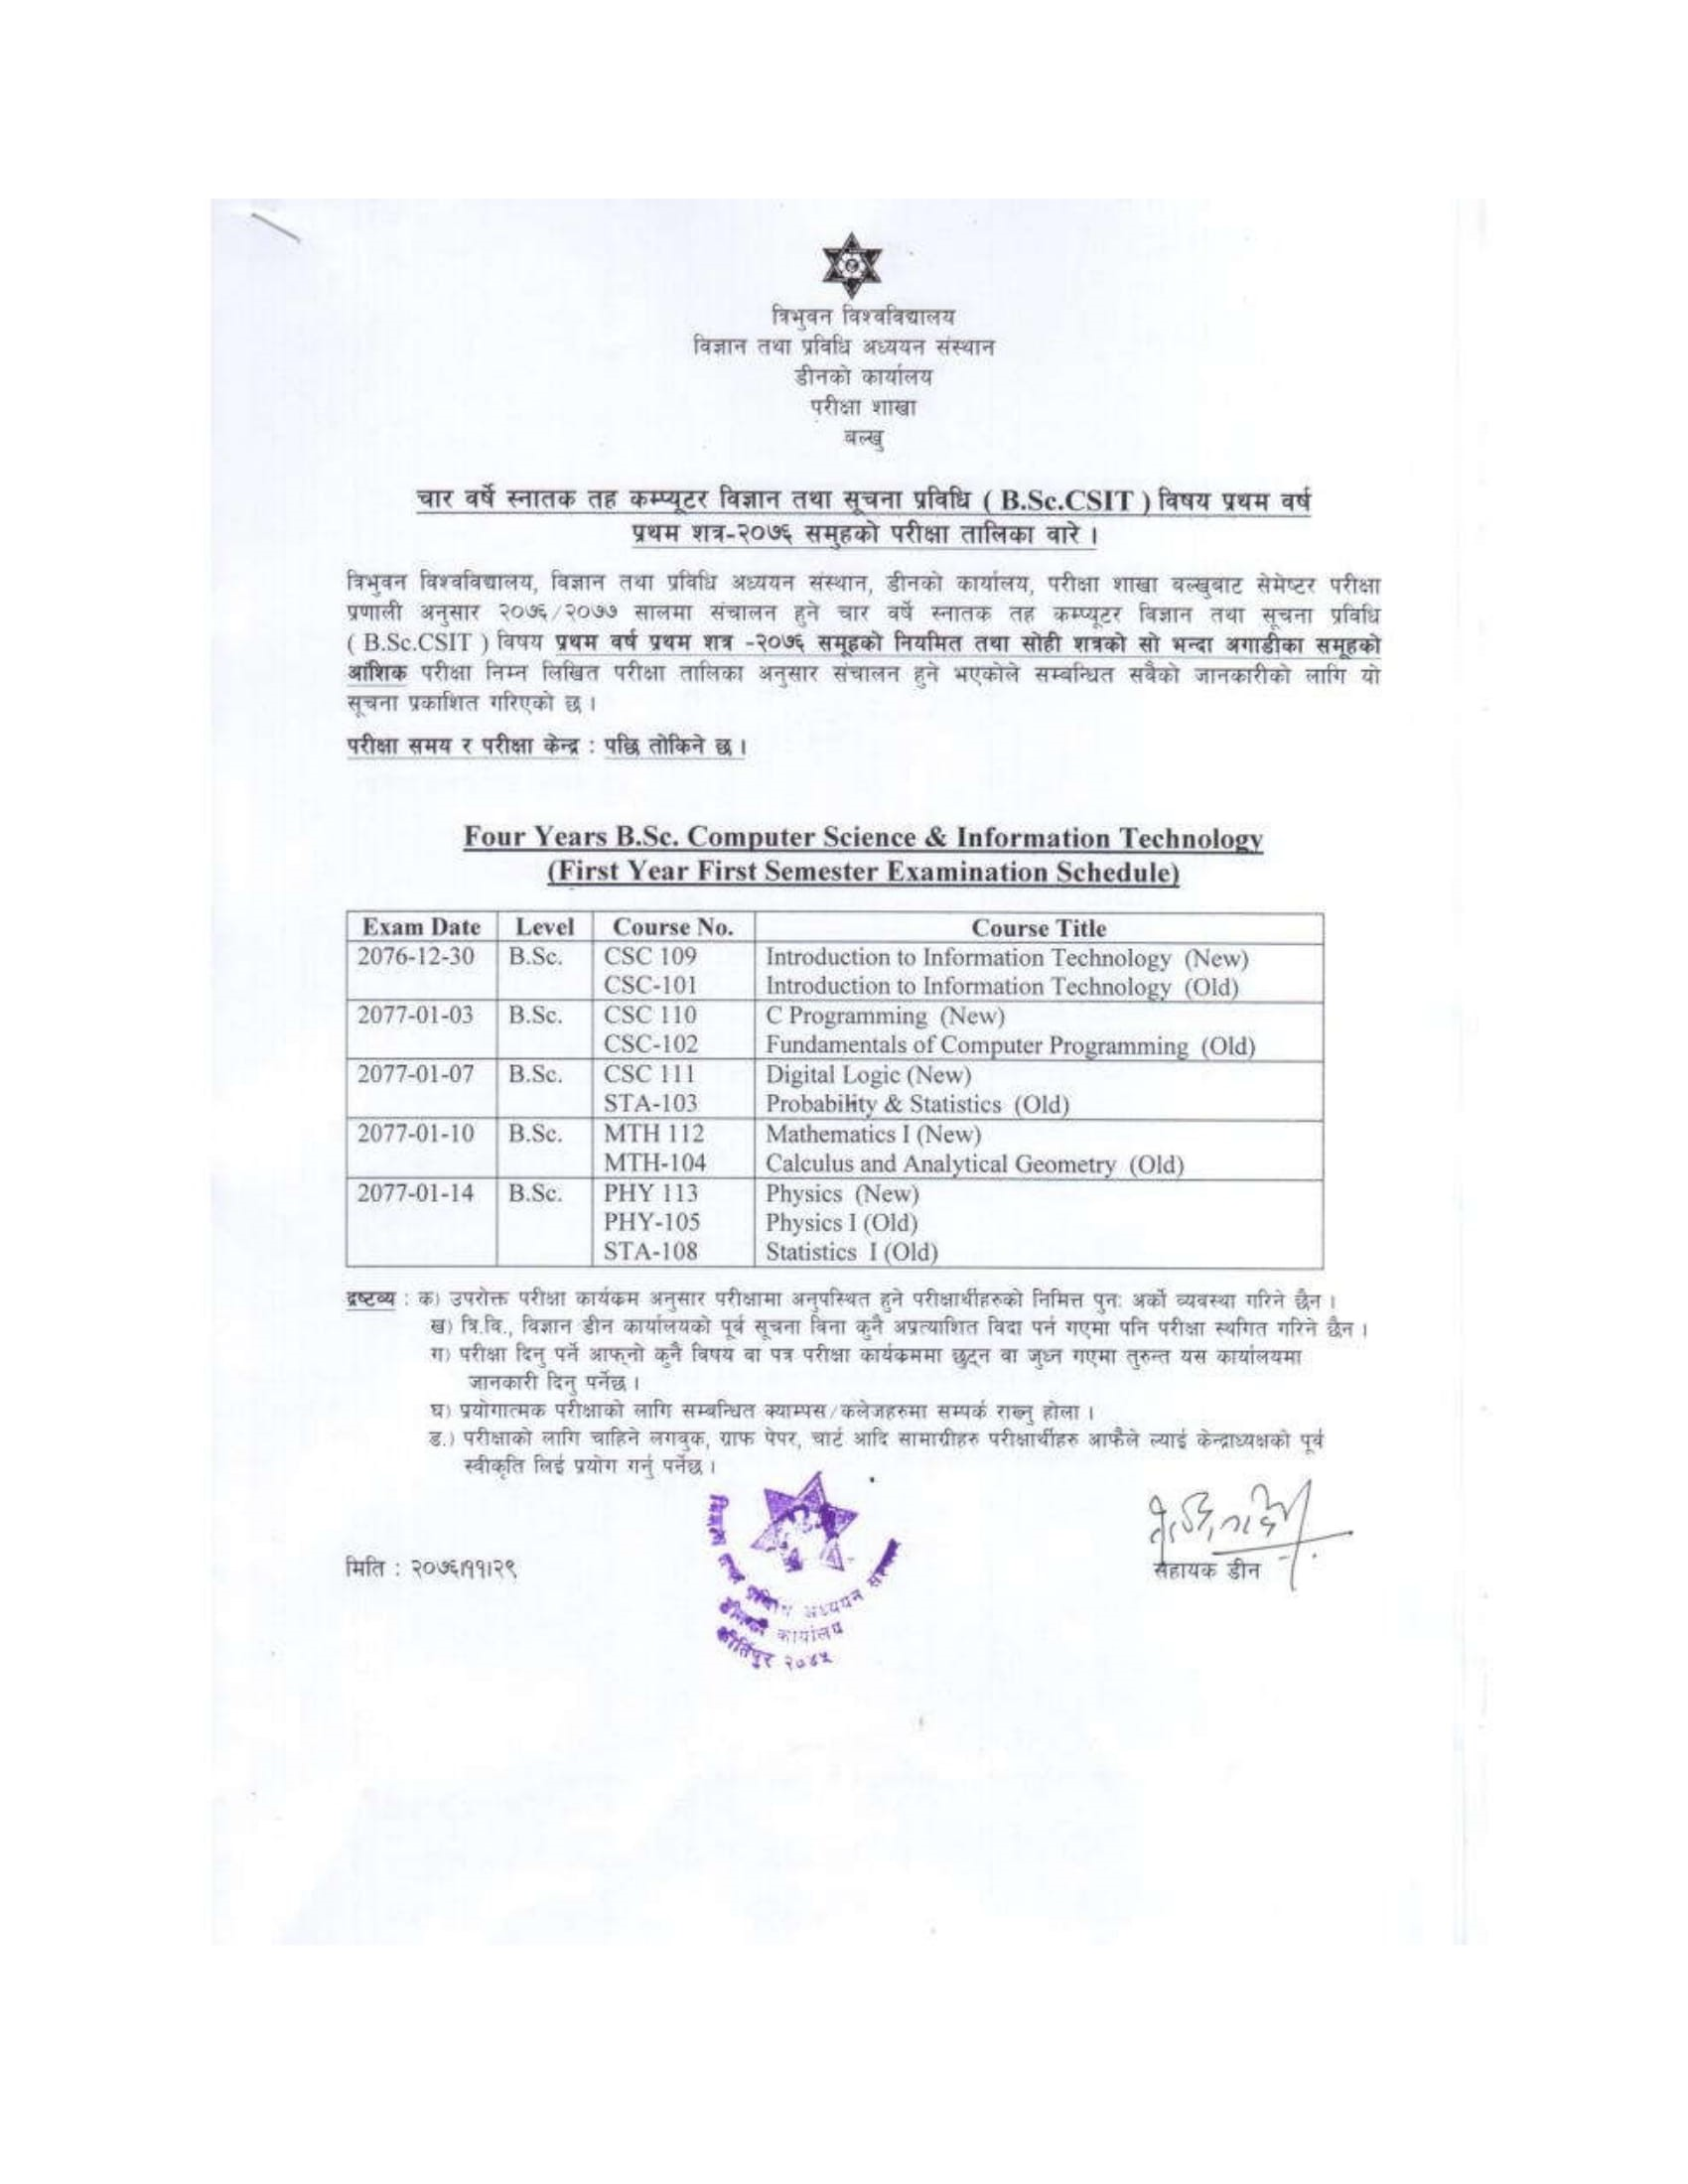 B.Sc CSIT First Semester Examination Routine 2076 Published: TU